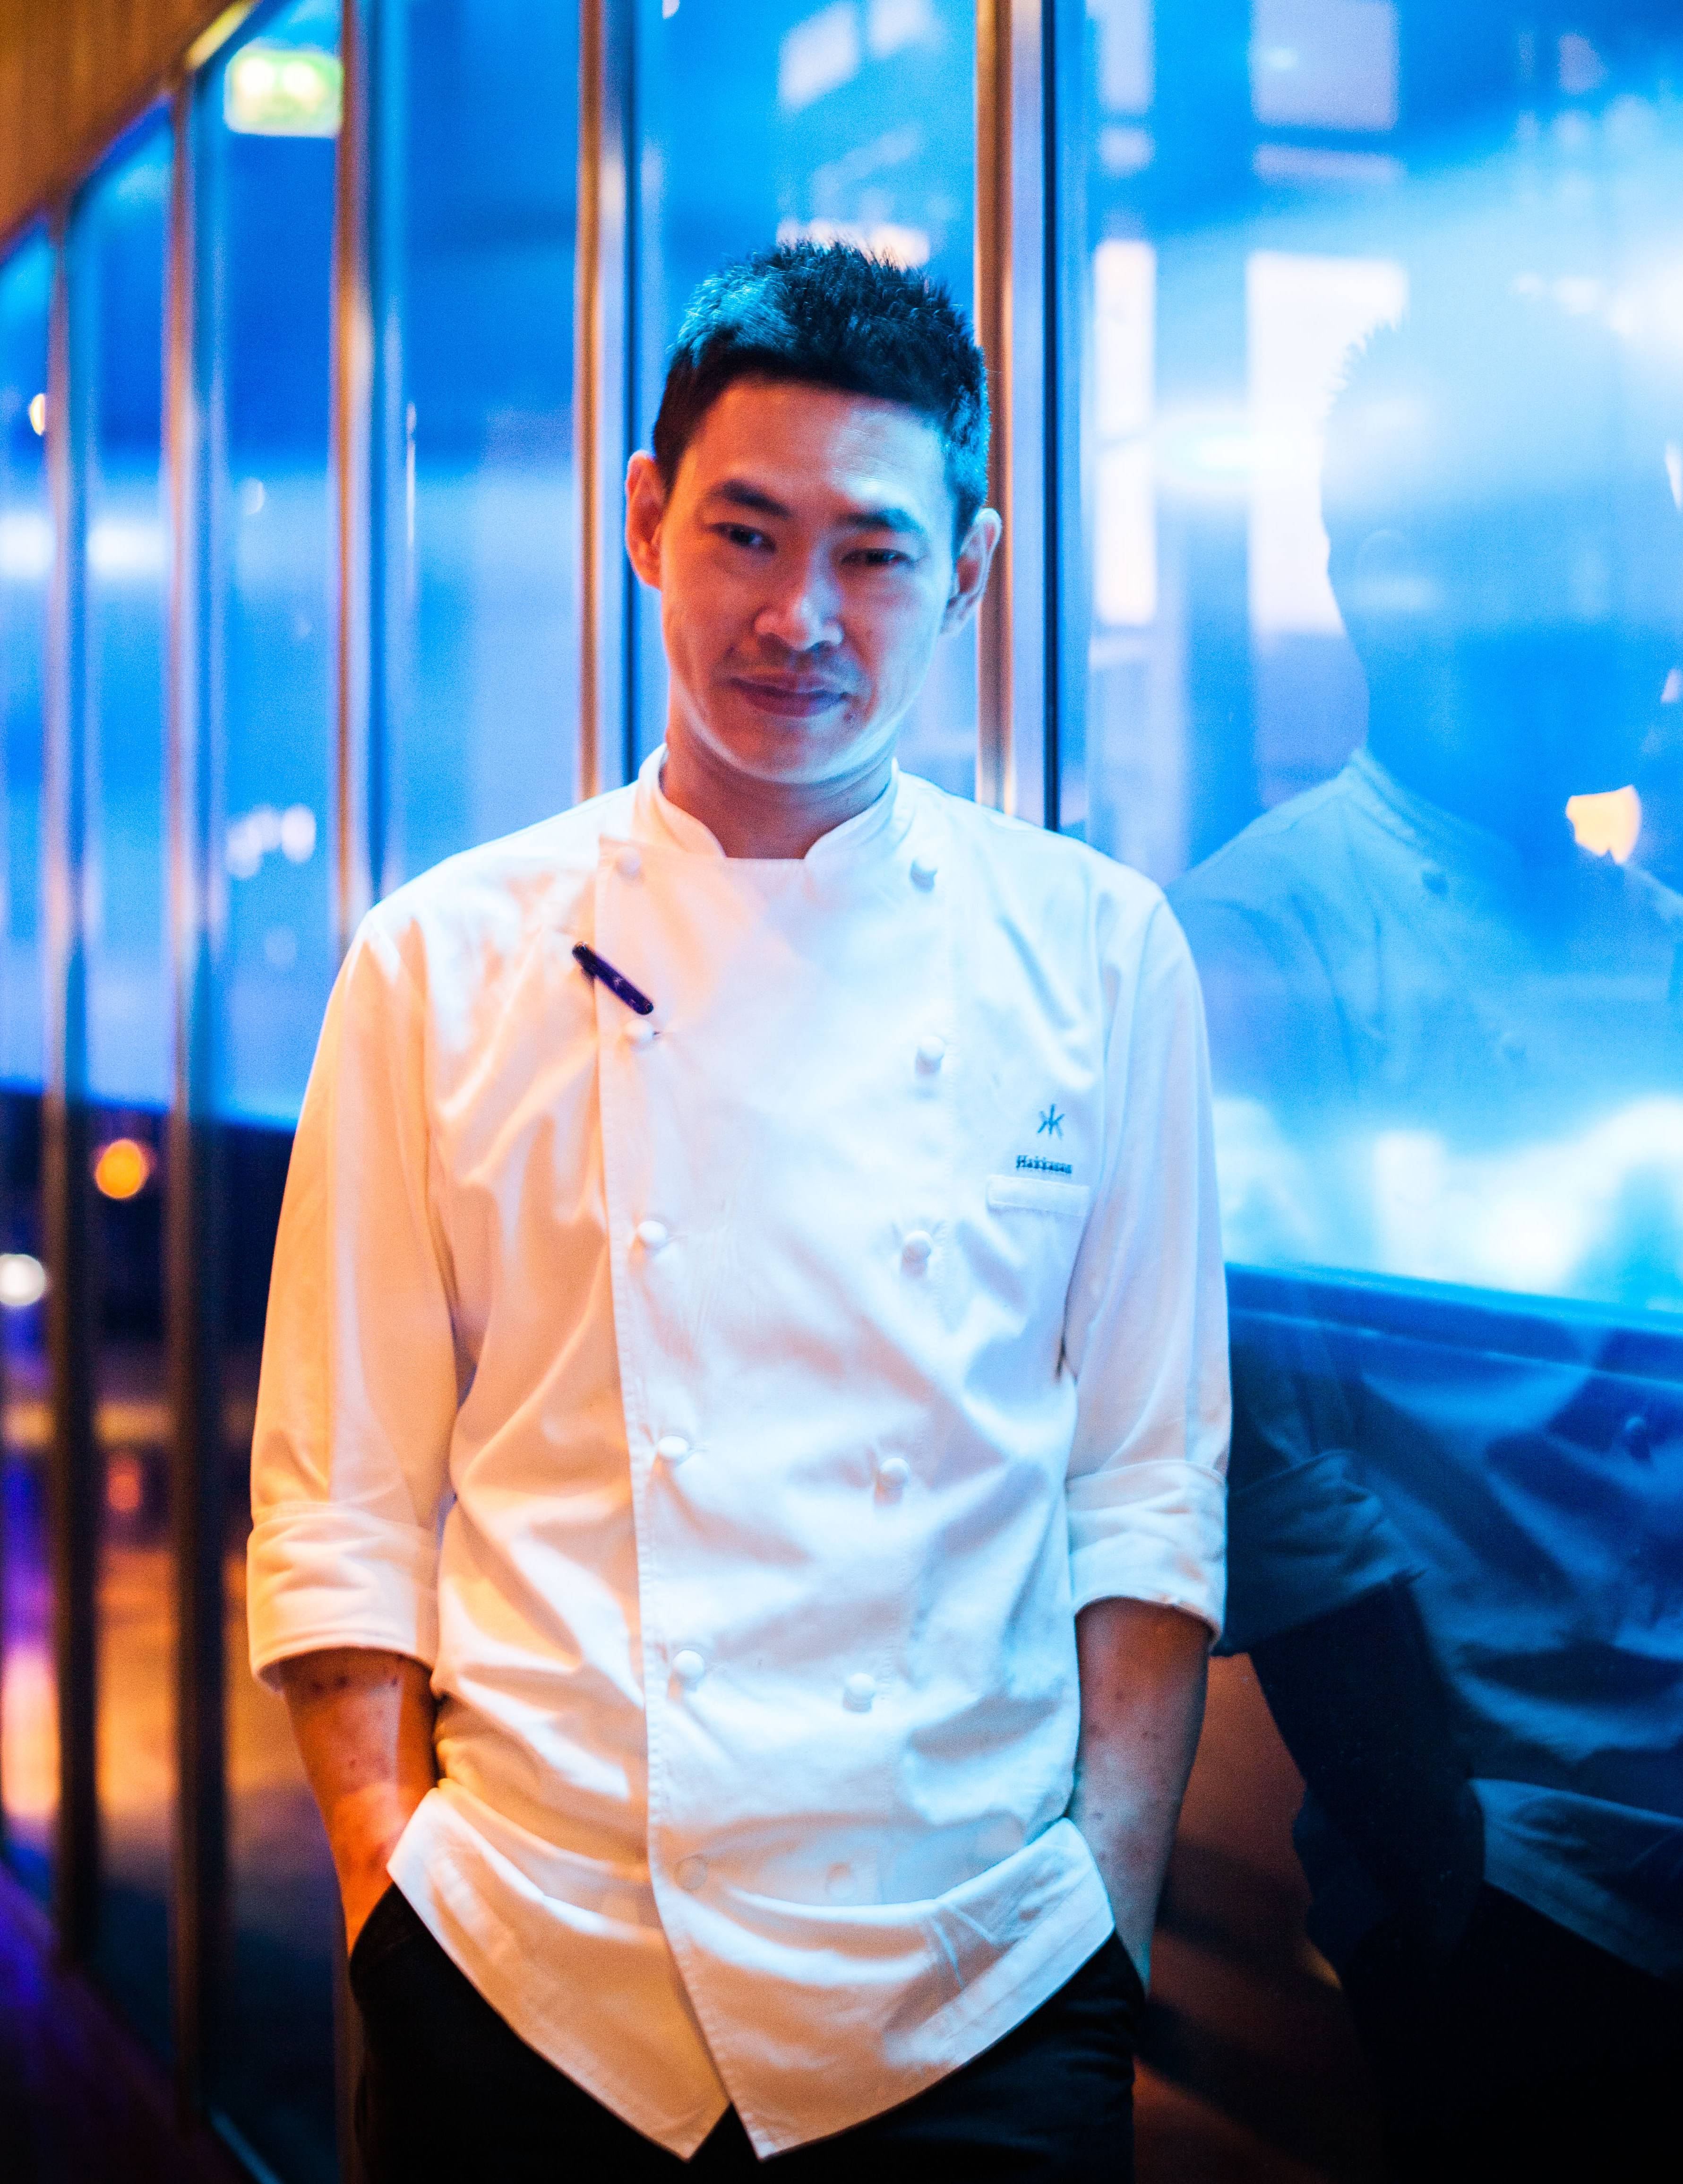 Chef Andy Toh Chye Siong